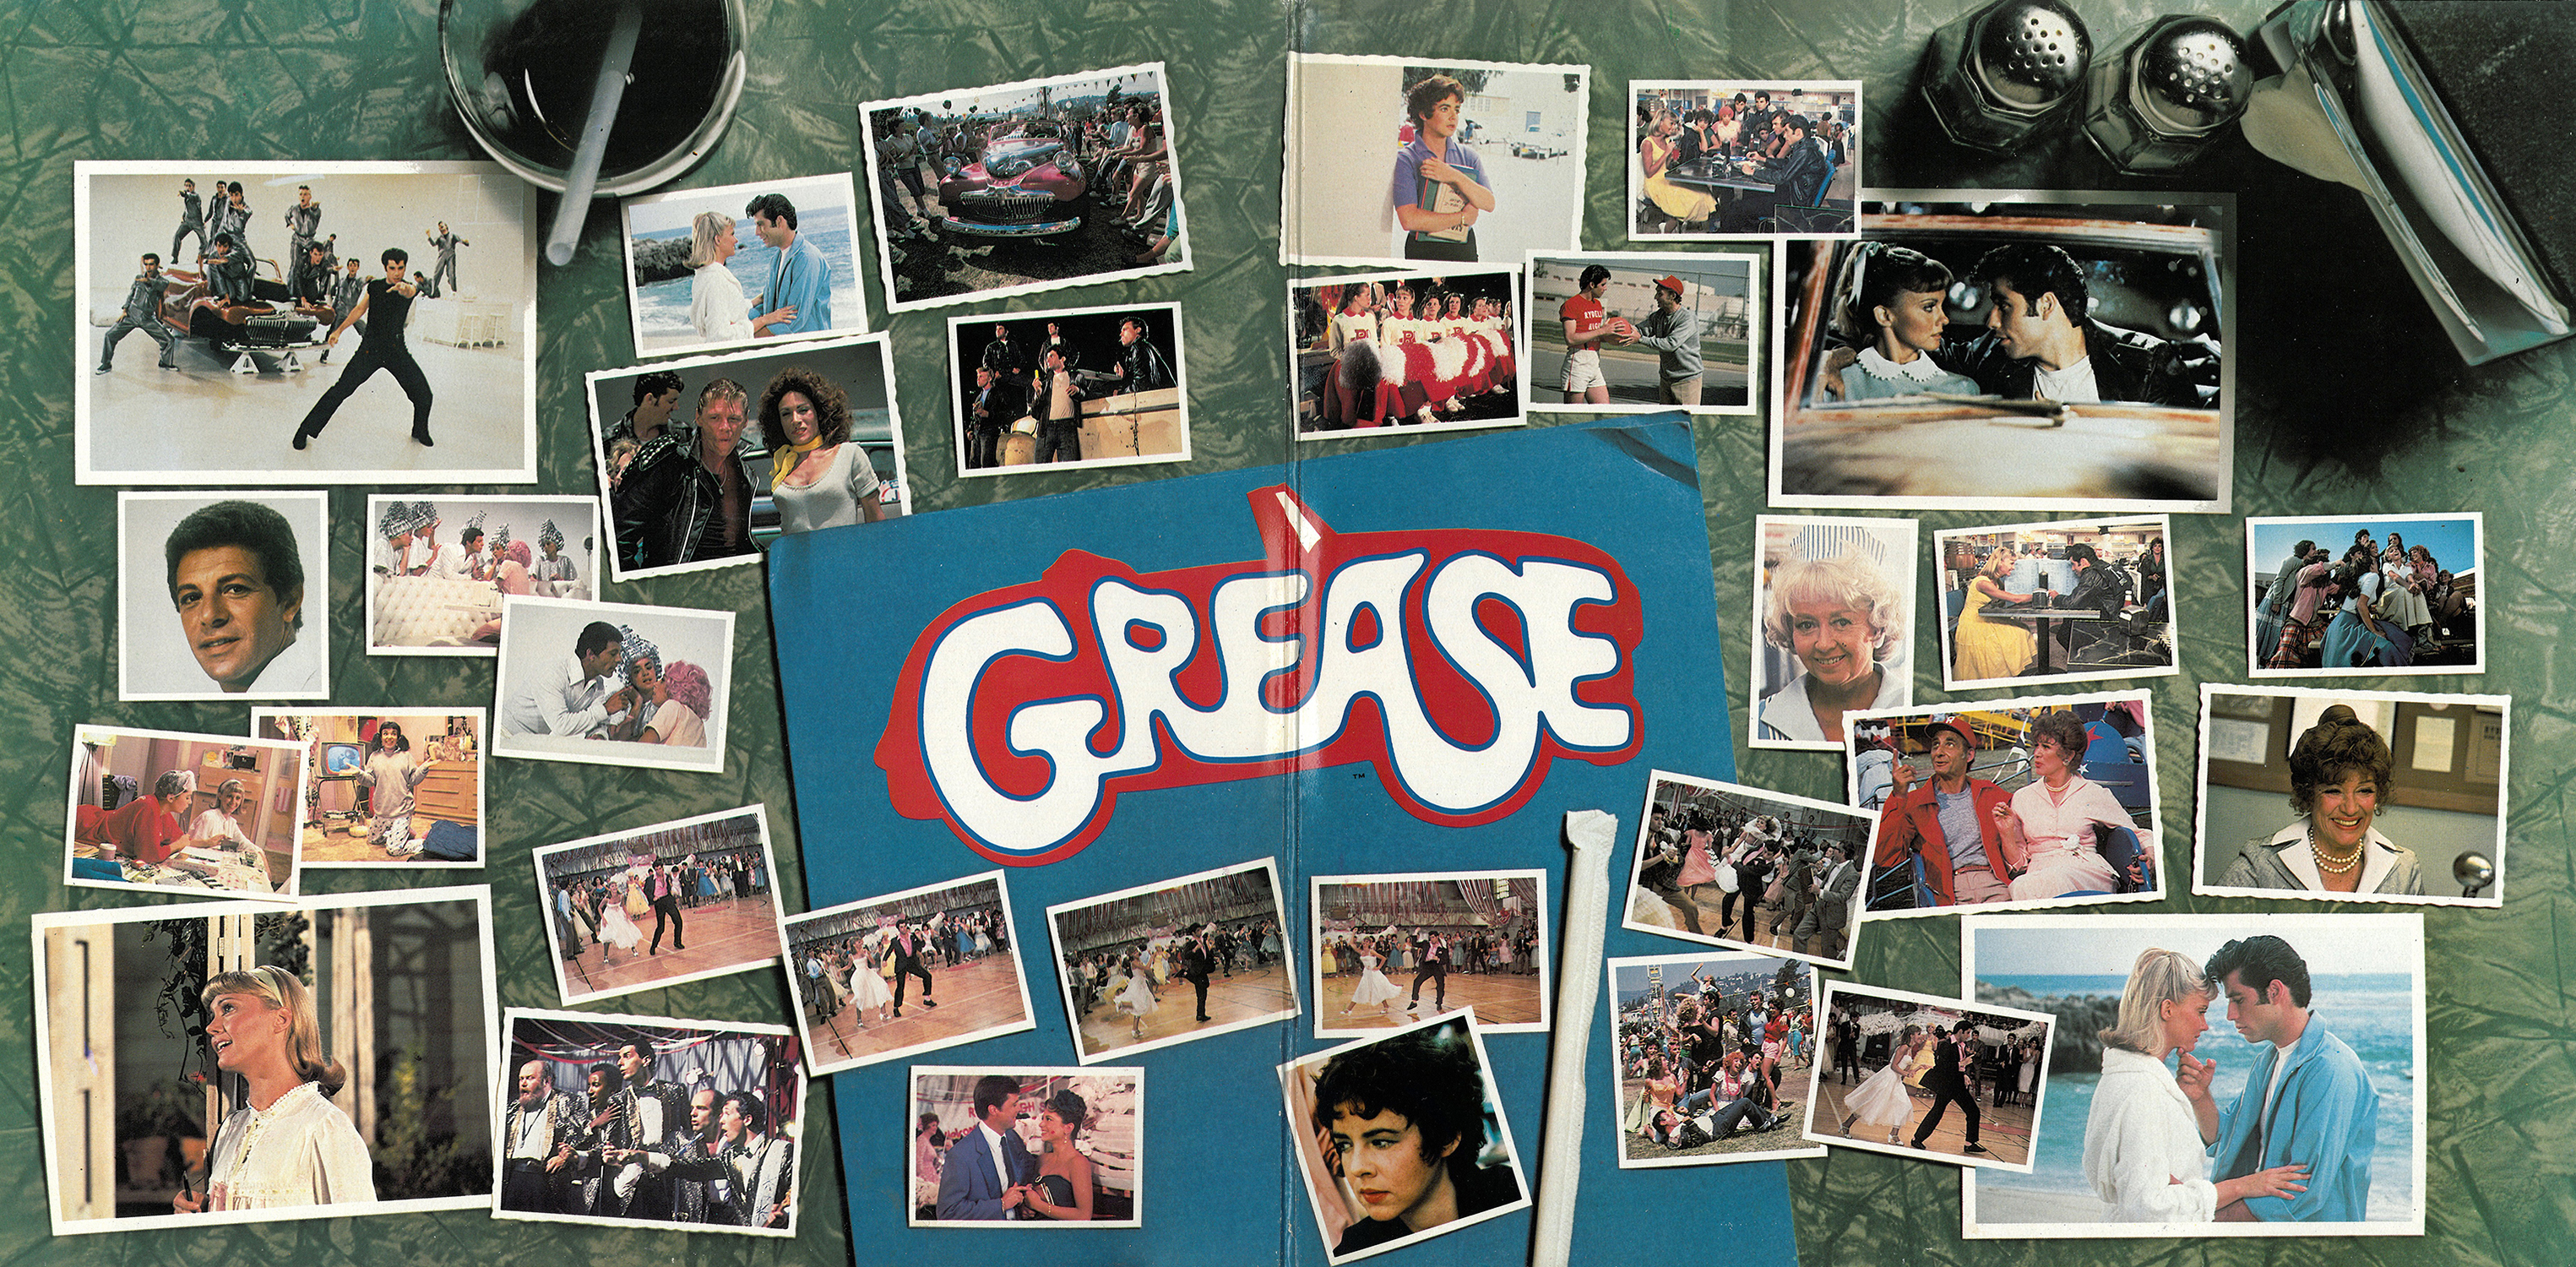 Grease Lp Cover Art